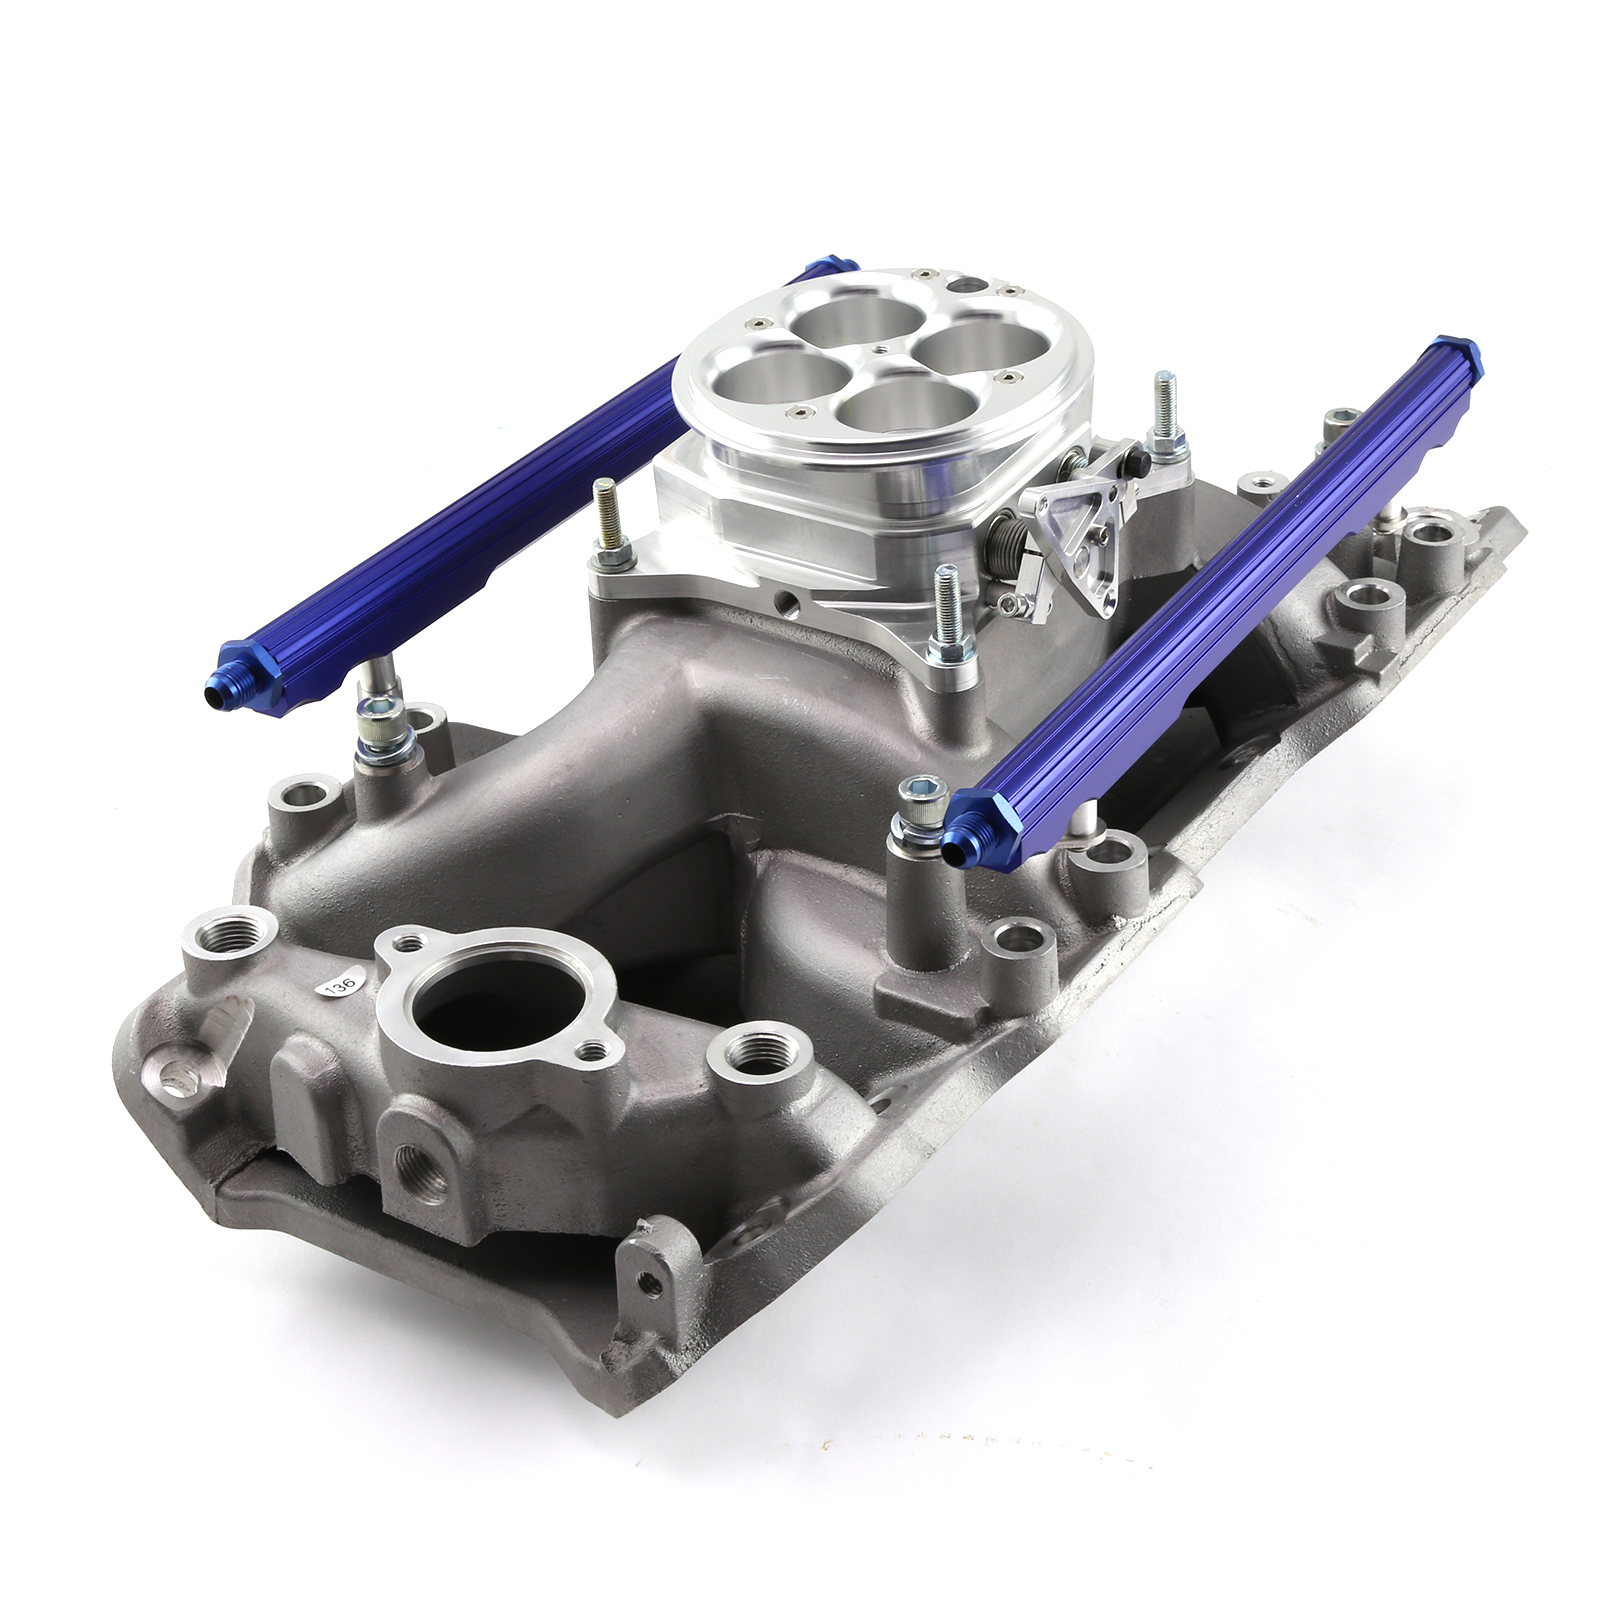 Chevy BBC 454 Rect Port Eliminator Fuel Inj Kit EFI with 1200 CFM Throttle Body